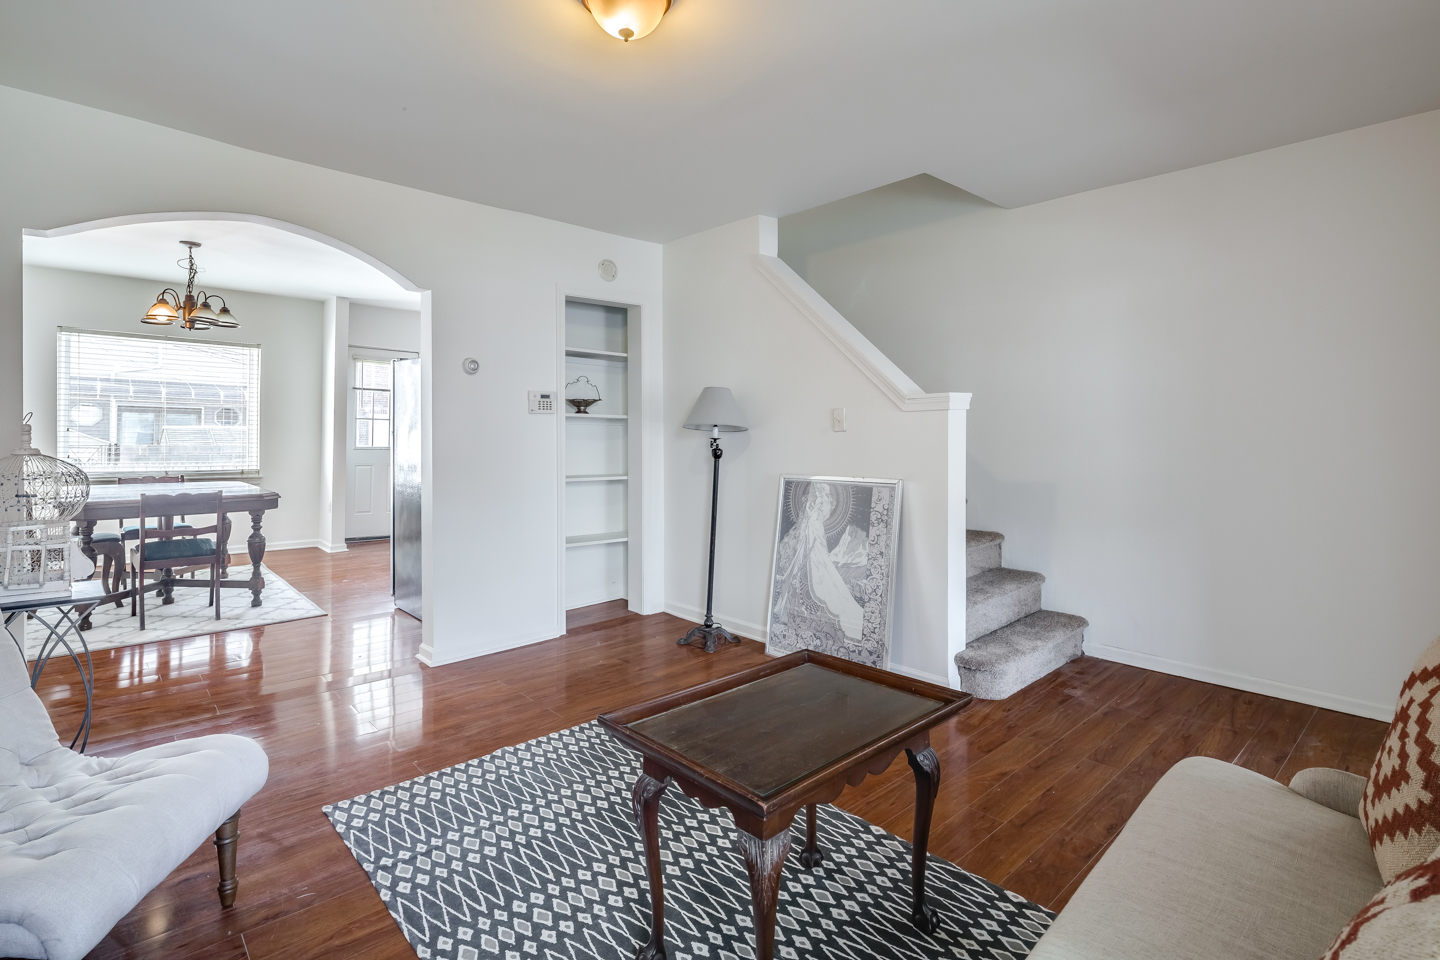 South Philly home near stadiums is just right, asks $195K